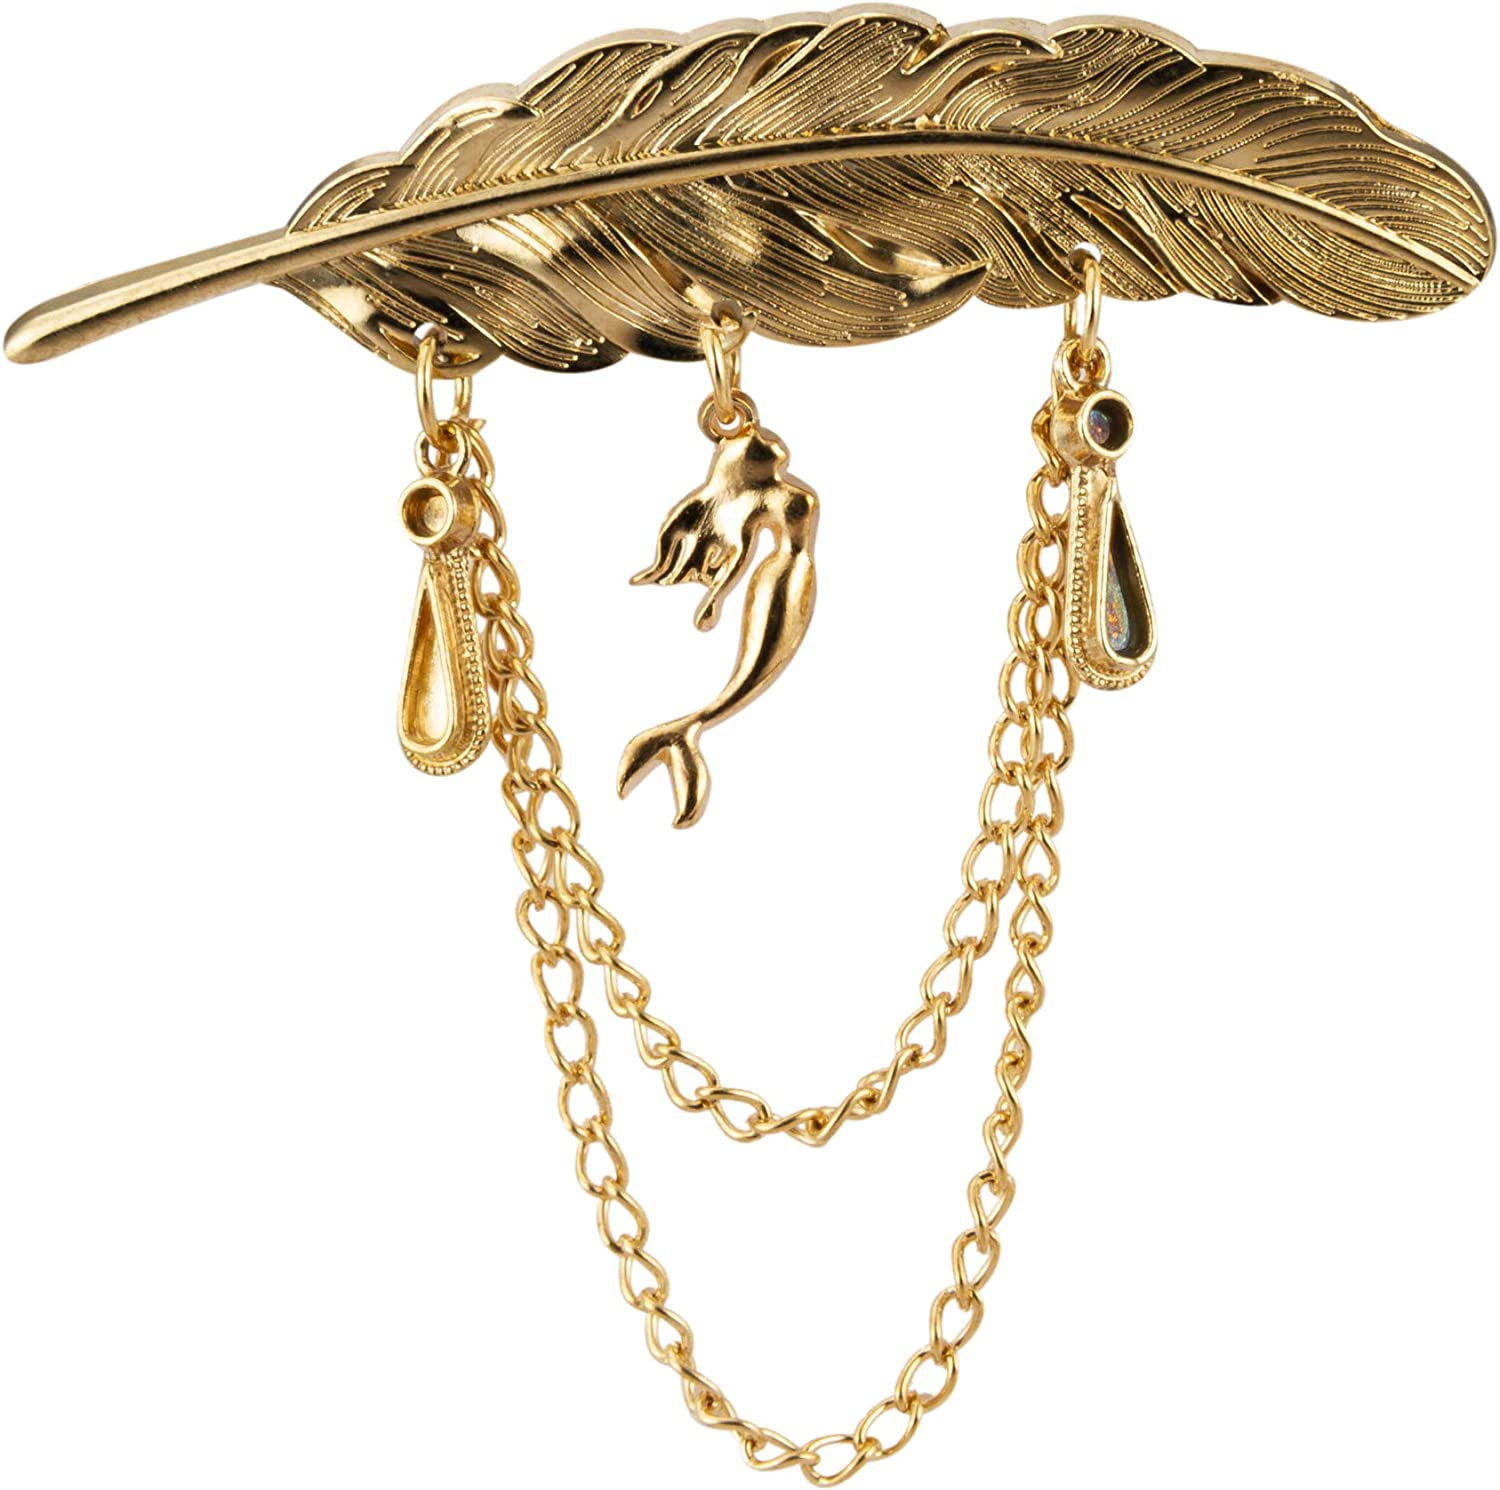 Knighthood Golden Feather with Hanging Chain and Mermaid Detailing Lapel Pin Brooch Shirt Stud